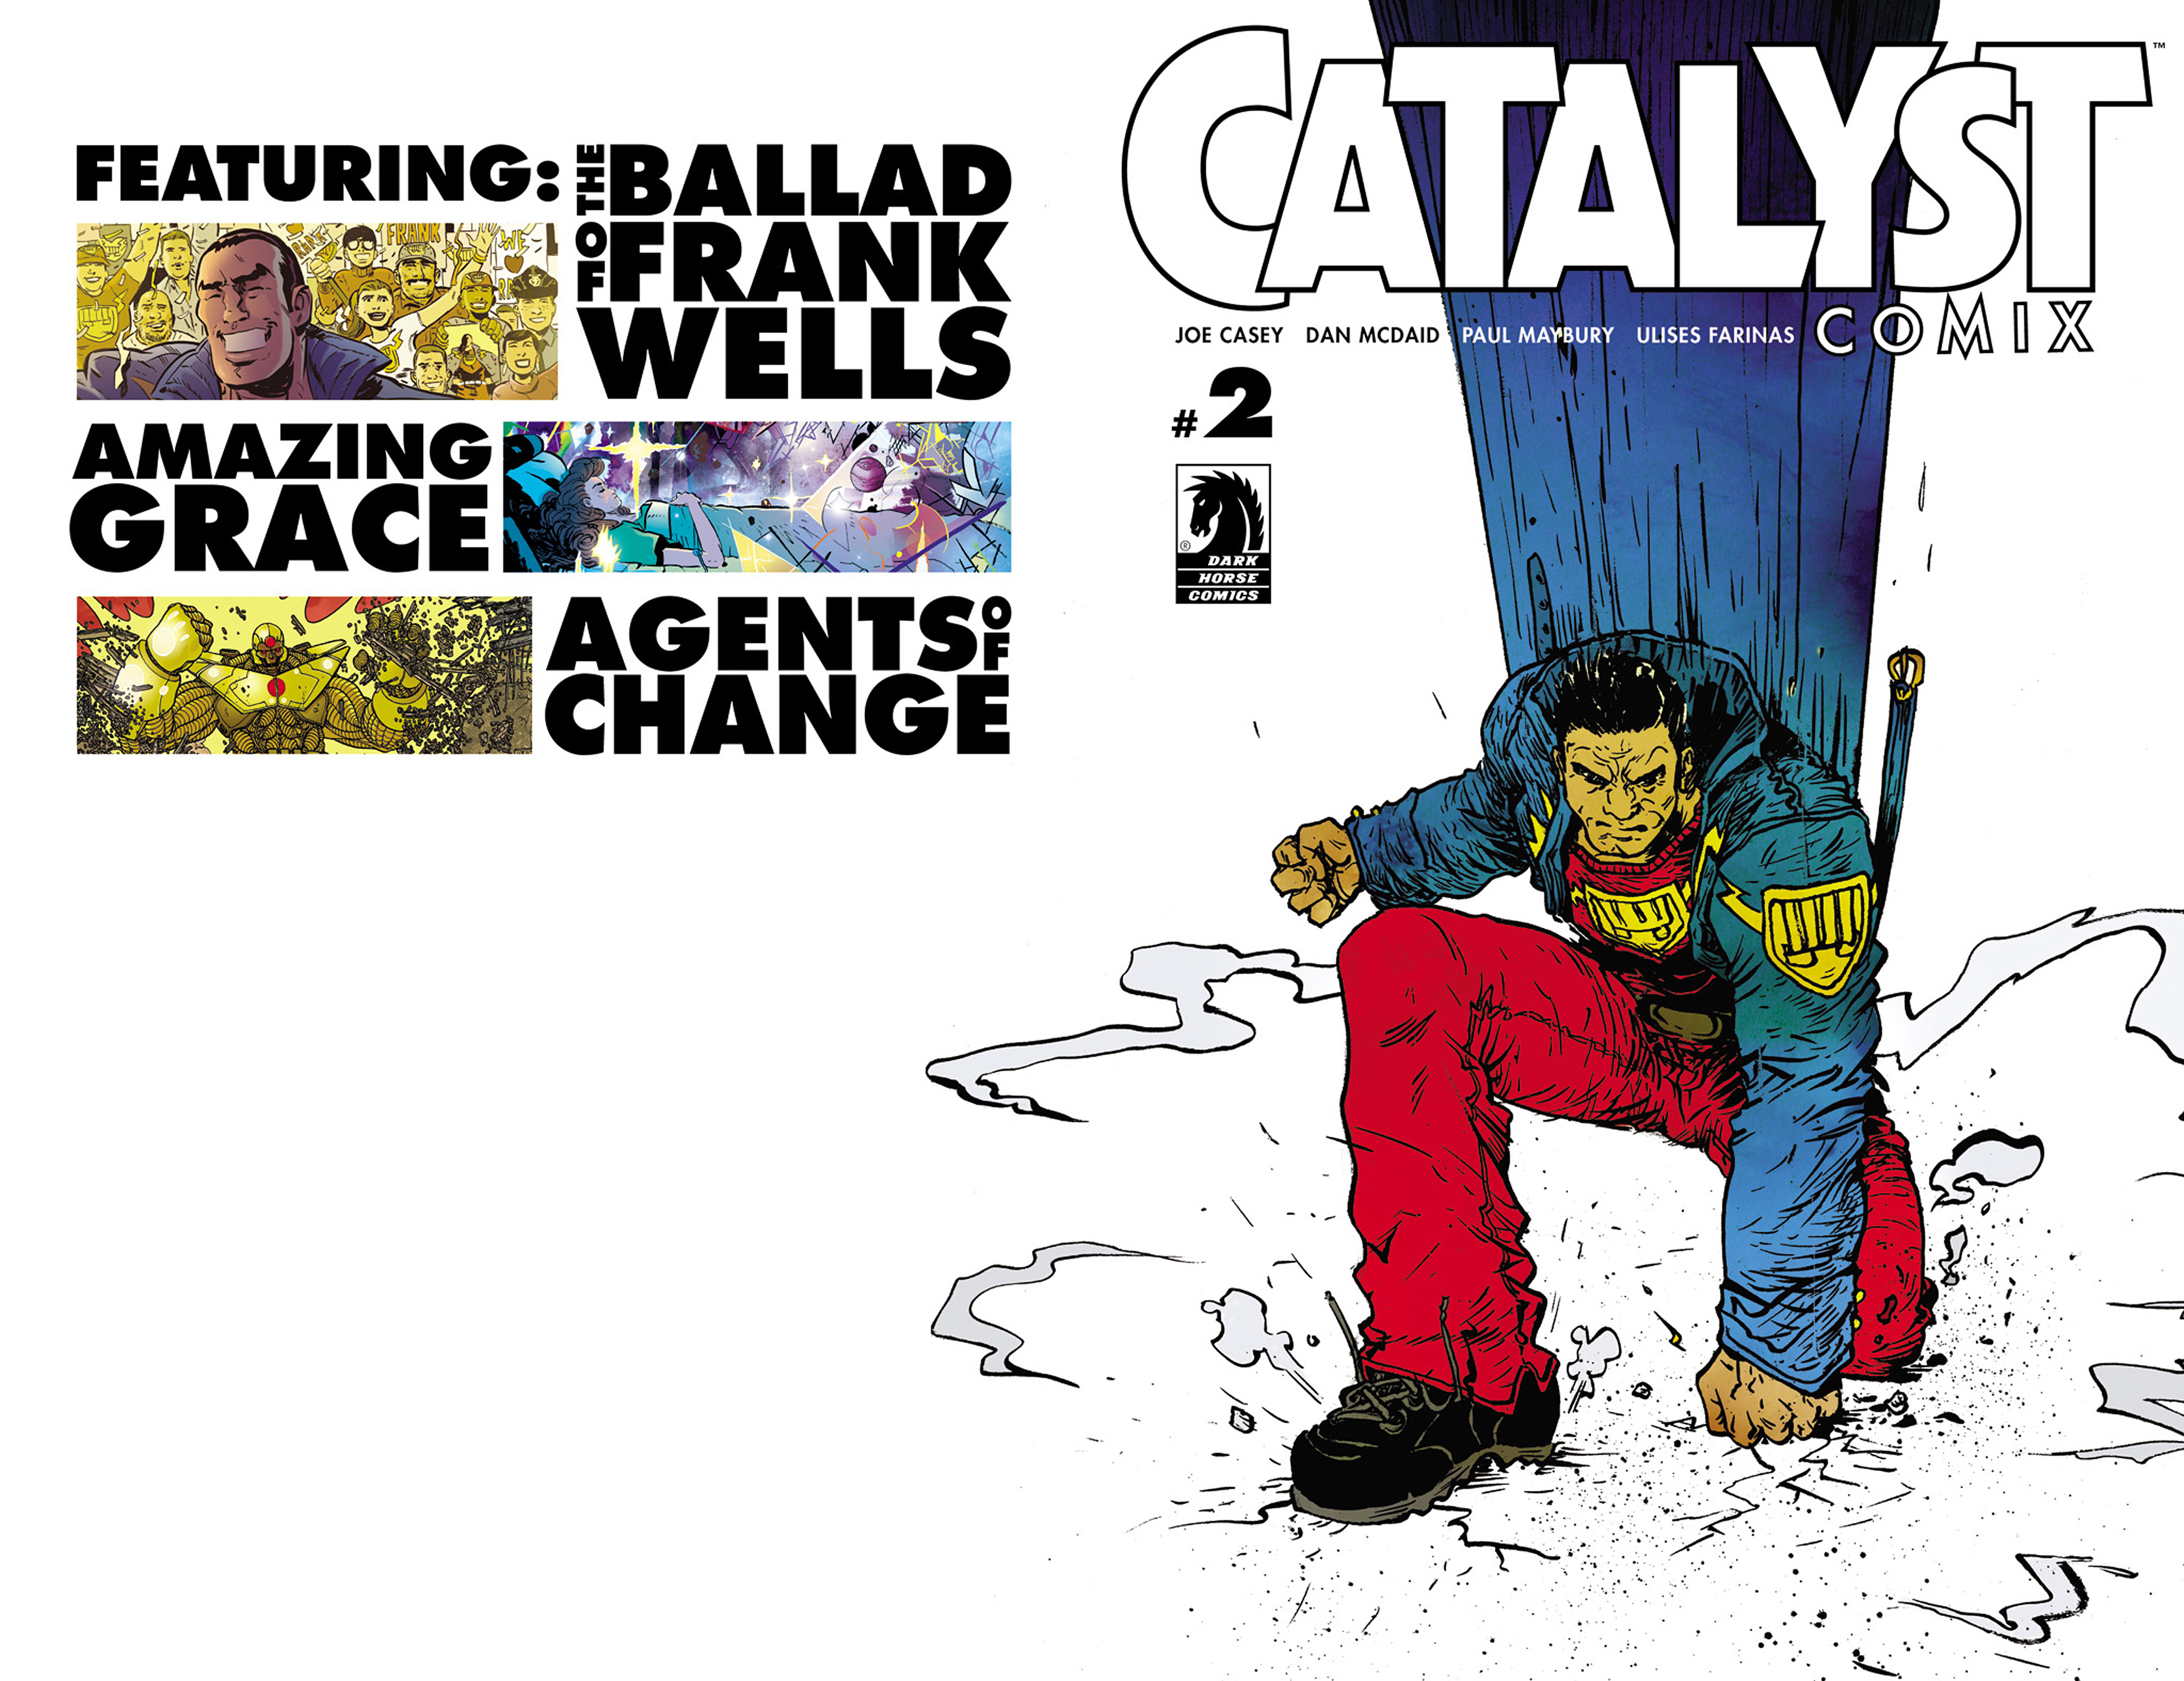 Read online Catalyst Comix comic -  Issue #2 - 2